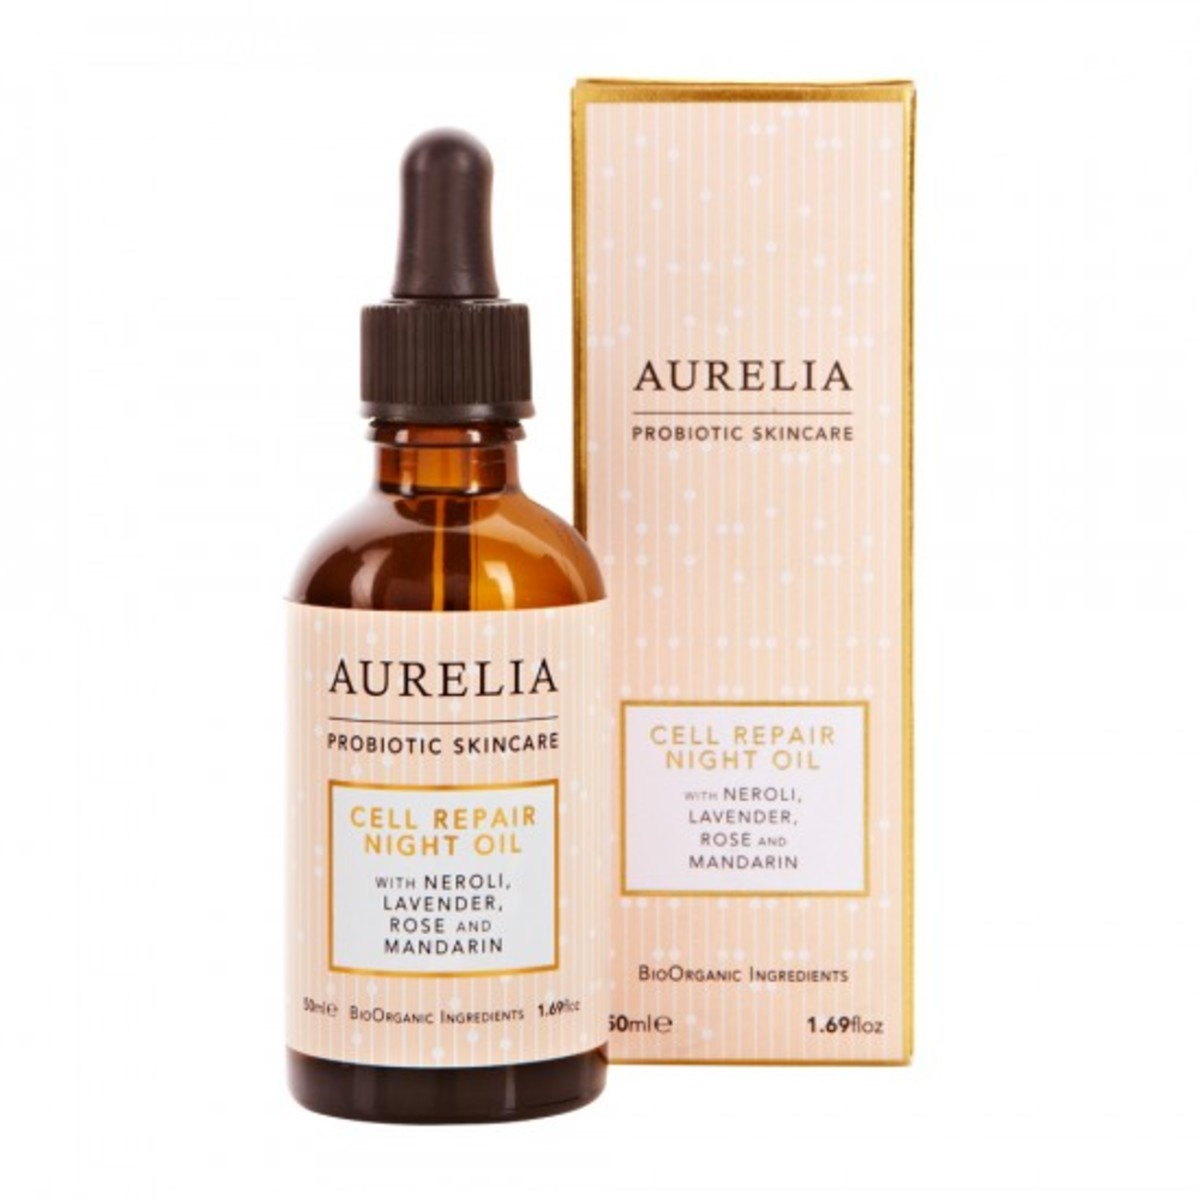 Aurelia Probiotic Skincare Night Oil